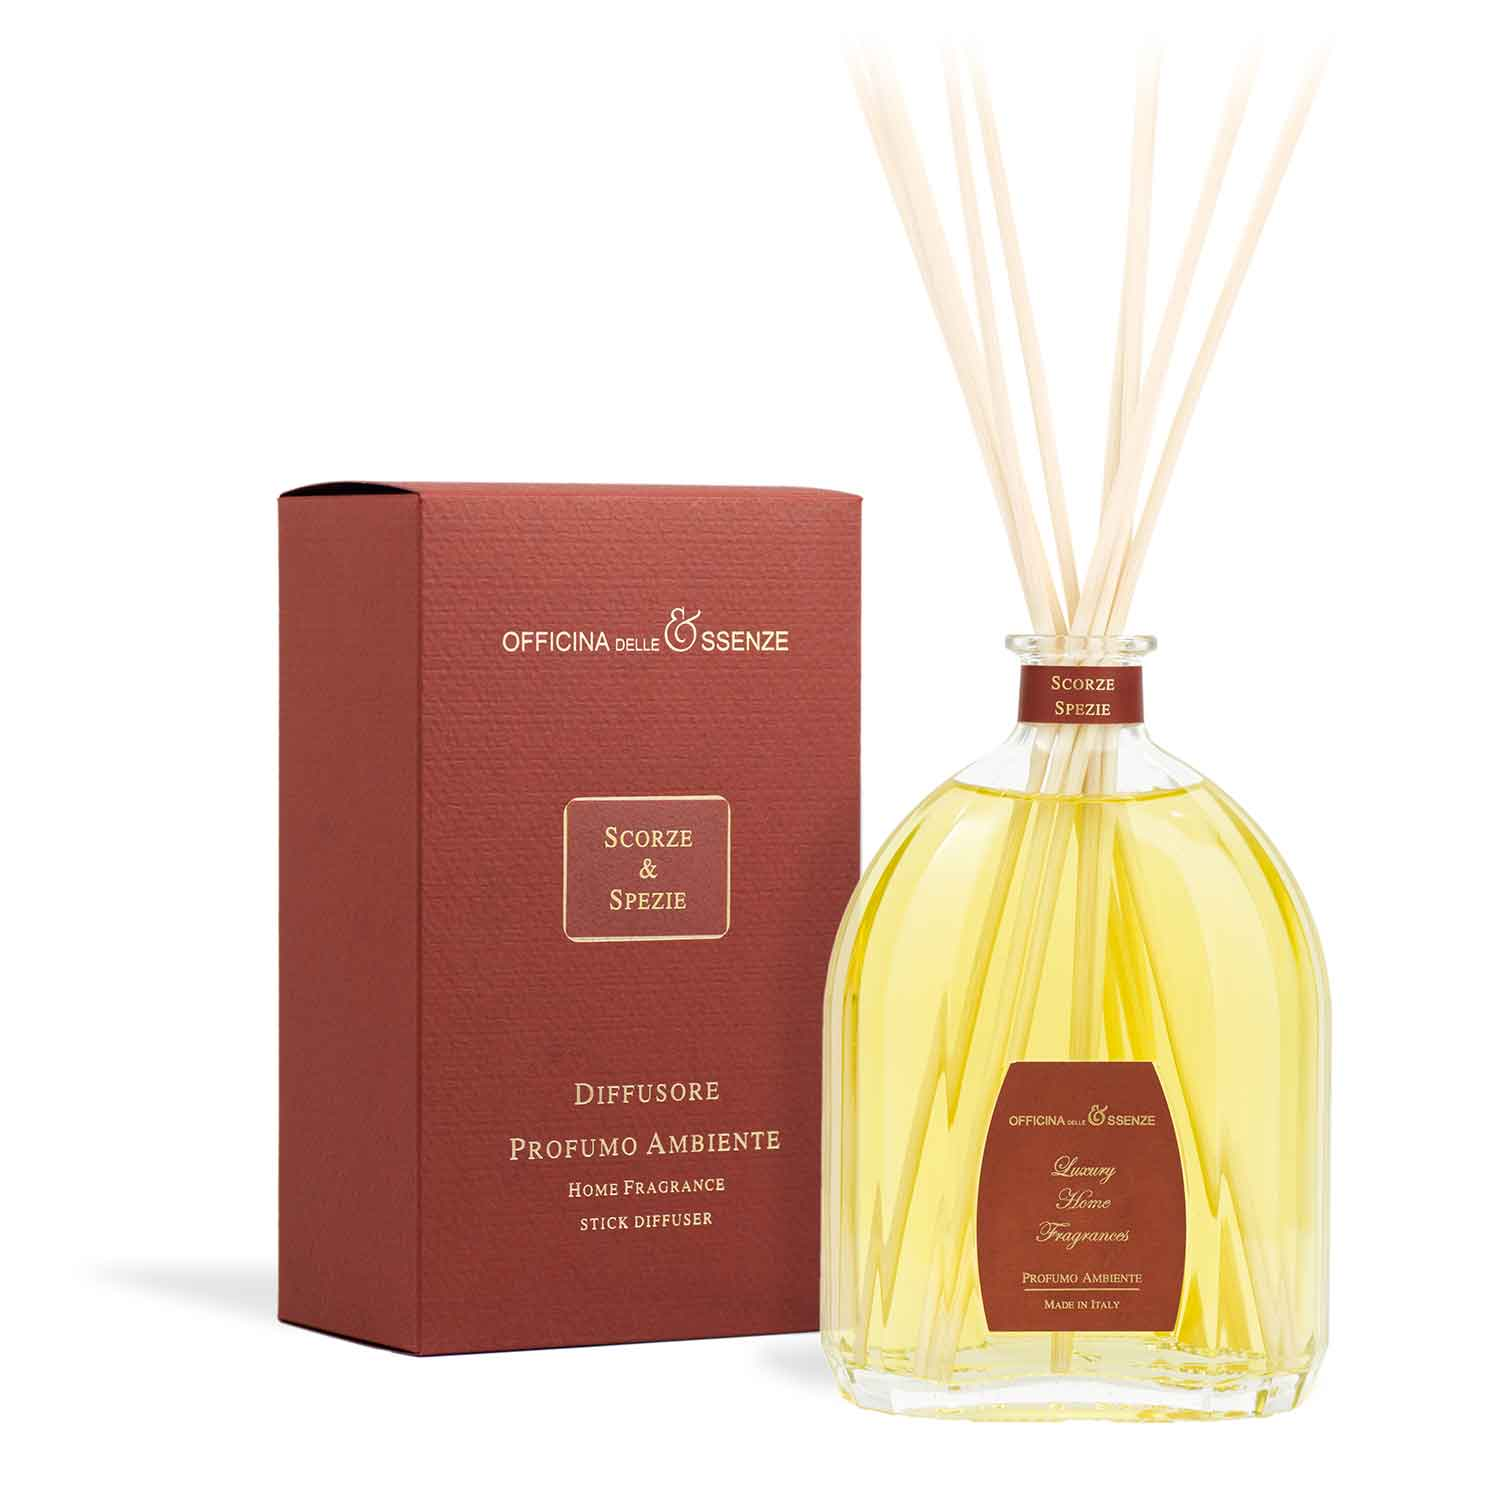 Scorze Spezie - Home reed diffuser